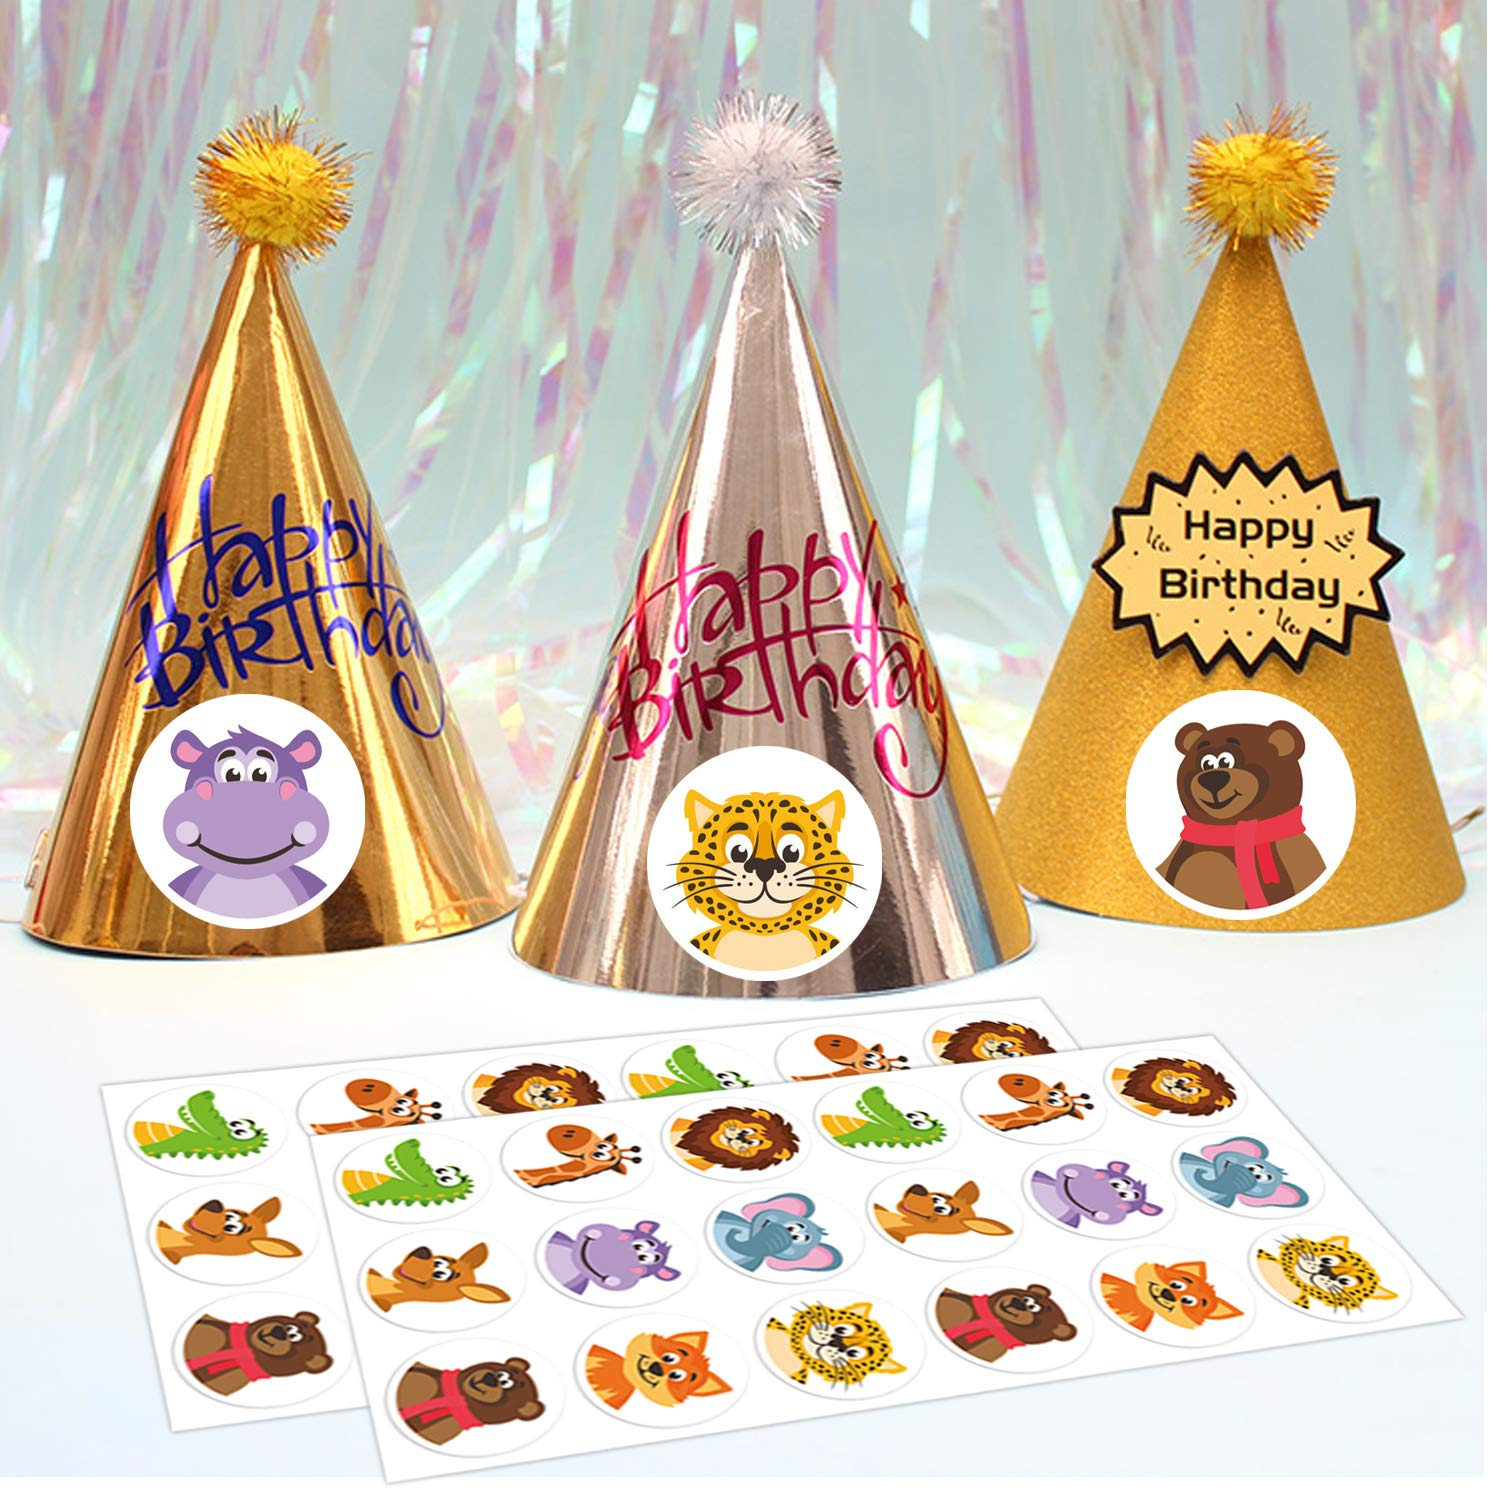 Birthday Party Ssupplies Stickers for Kids Mr.Mug 1.4 Inches 500 Woodland Animal Stickers Animal Sticker Party Favors Adhesive Stickers for Toddlers